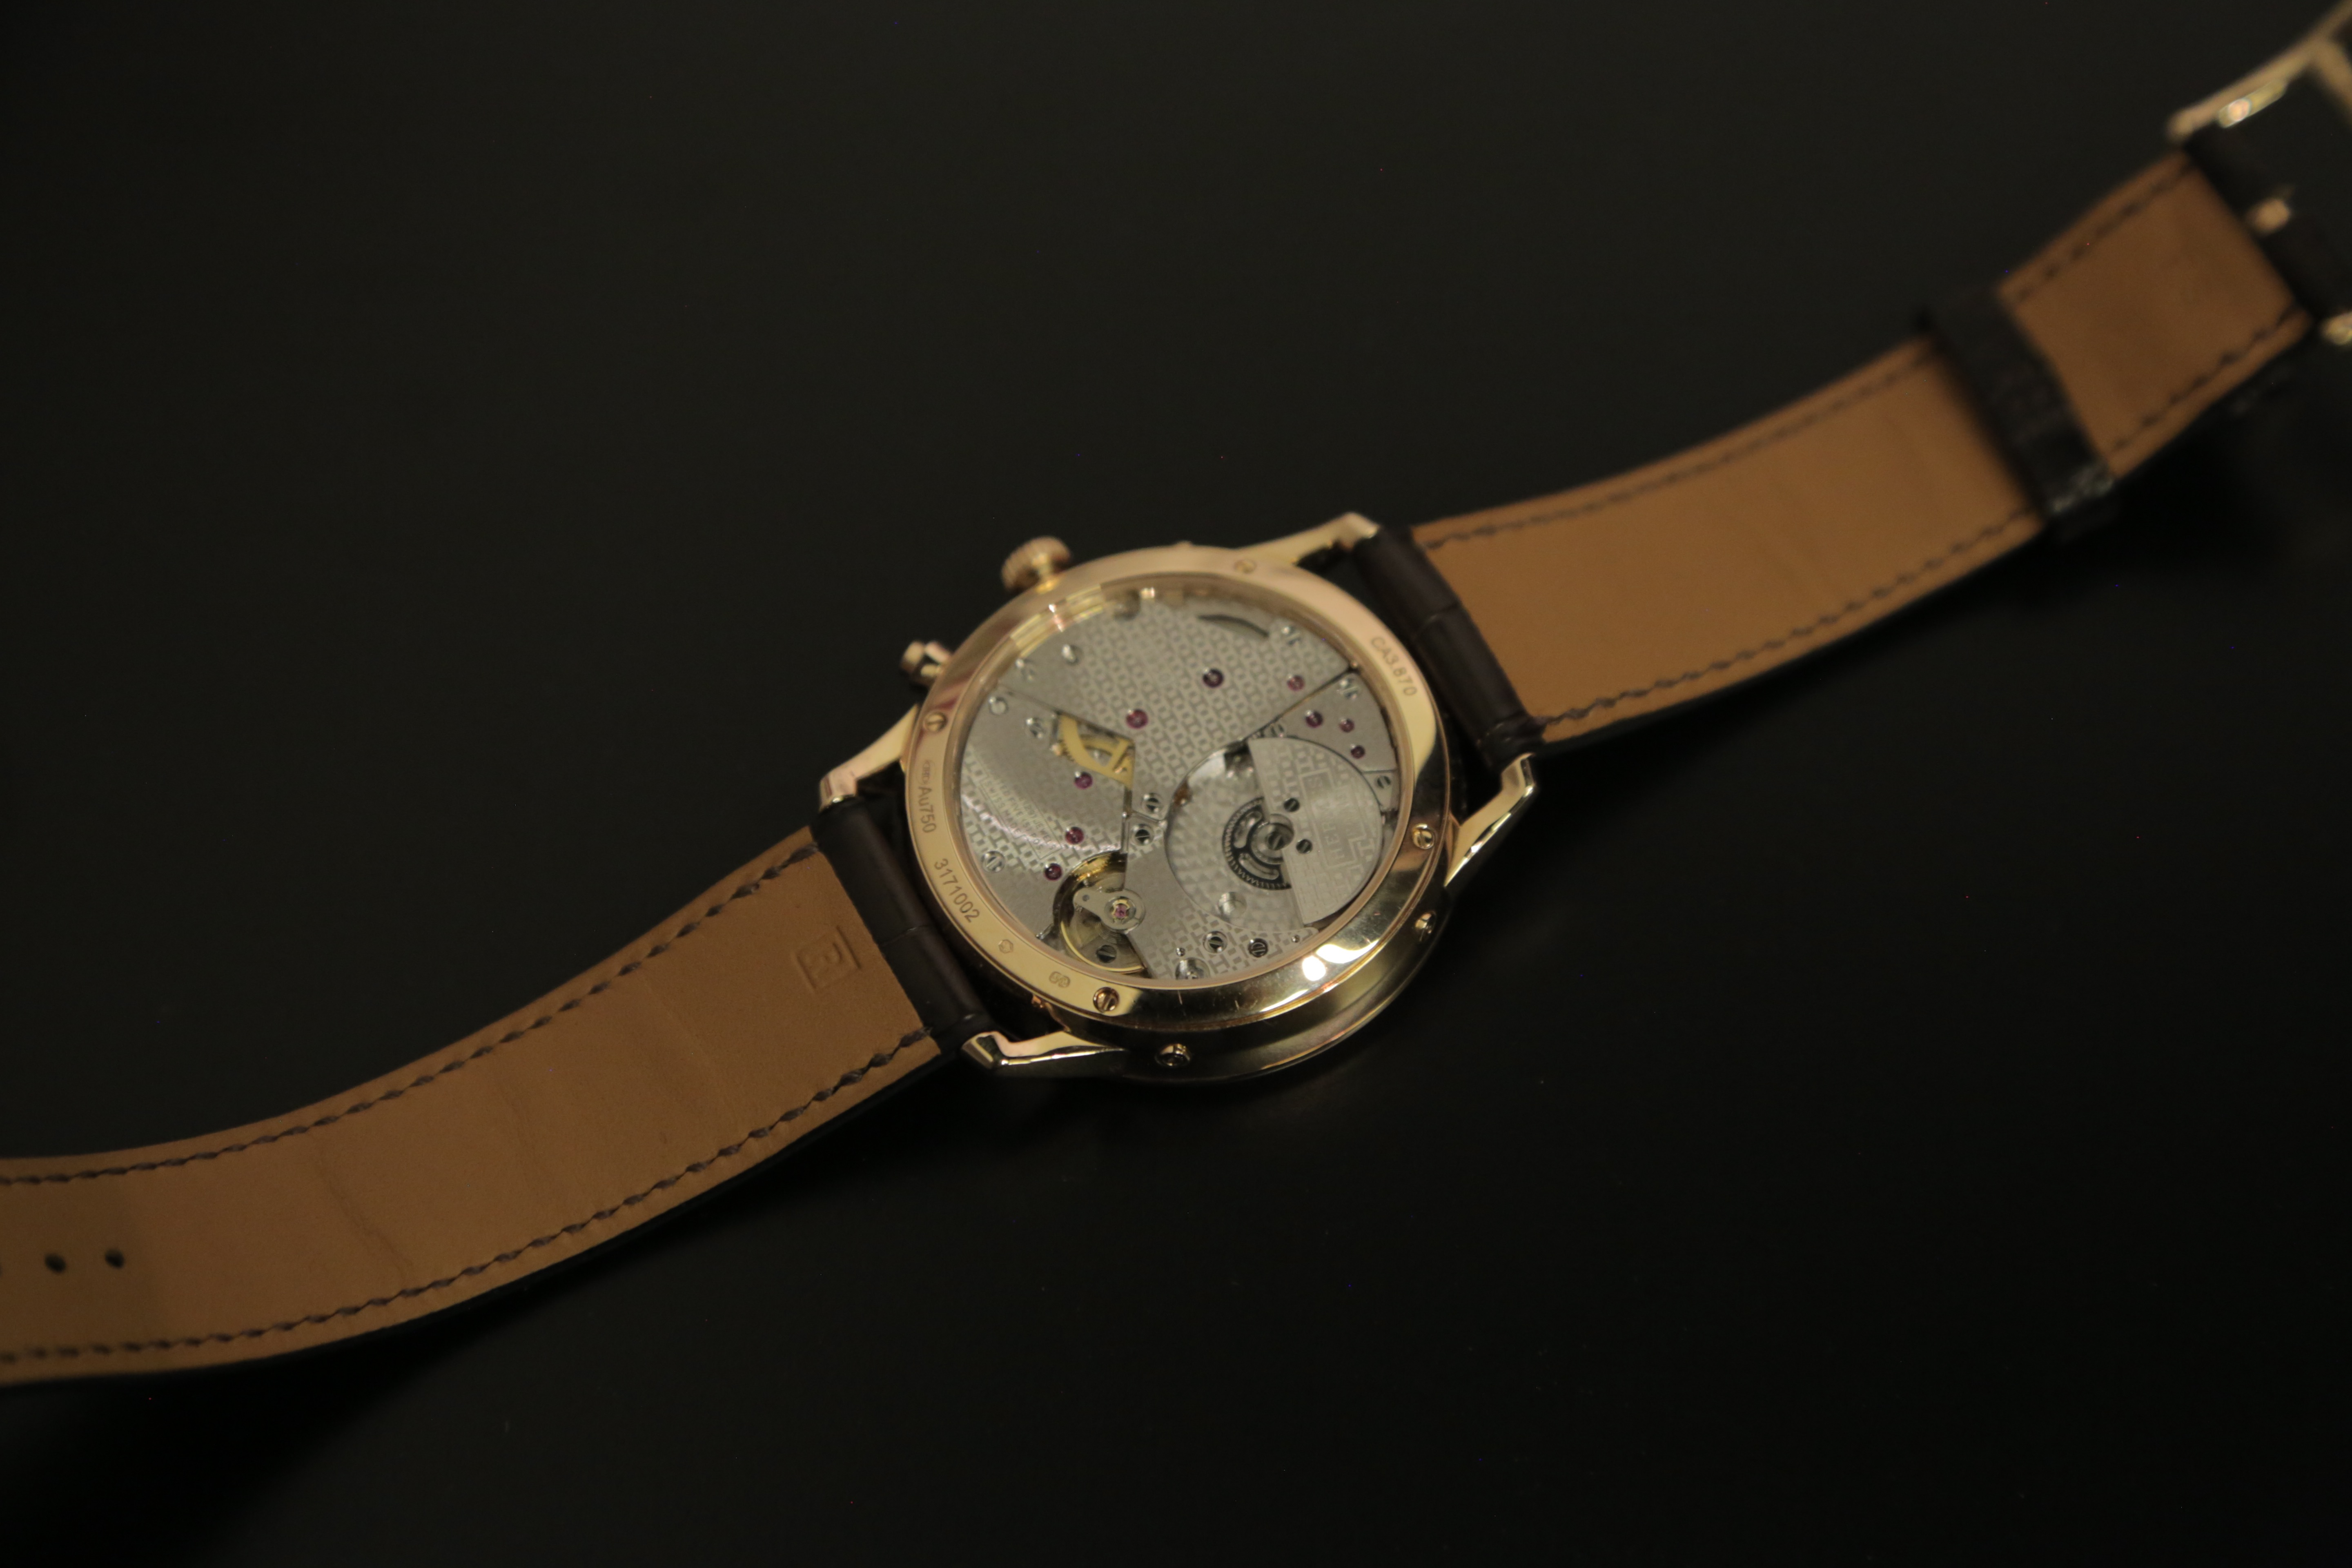 priced exquisitely honestly amazing watches steinhart and accurate are designed pin